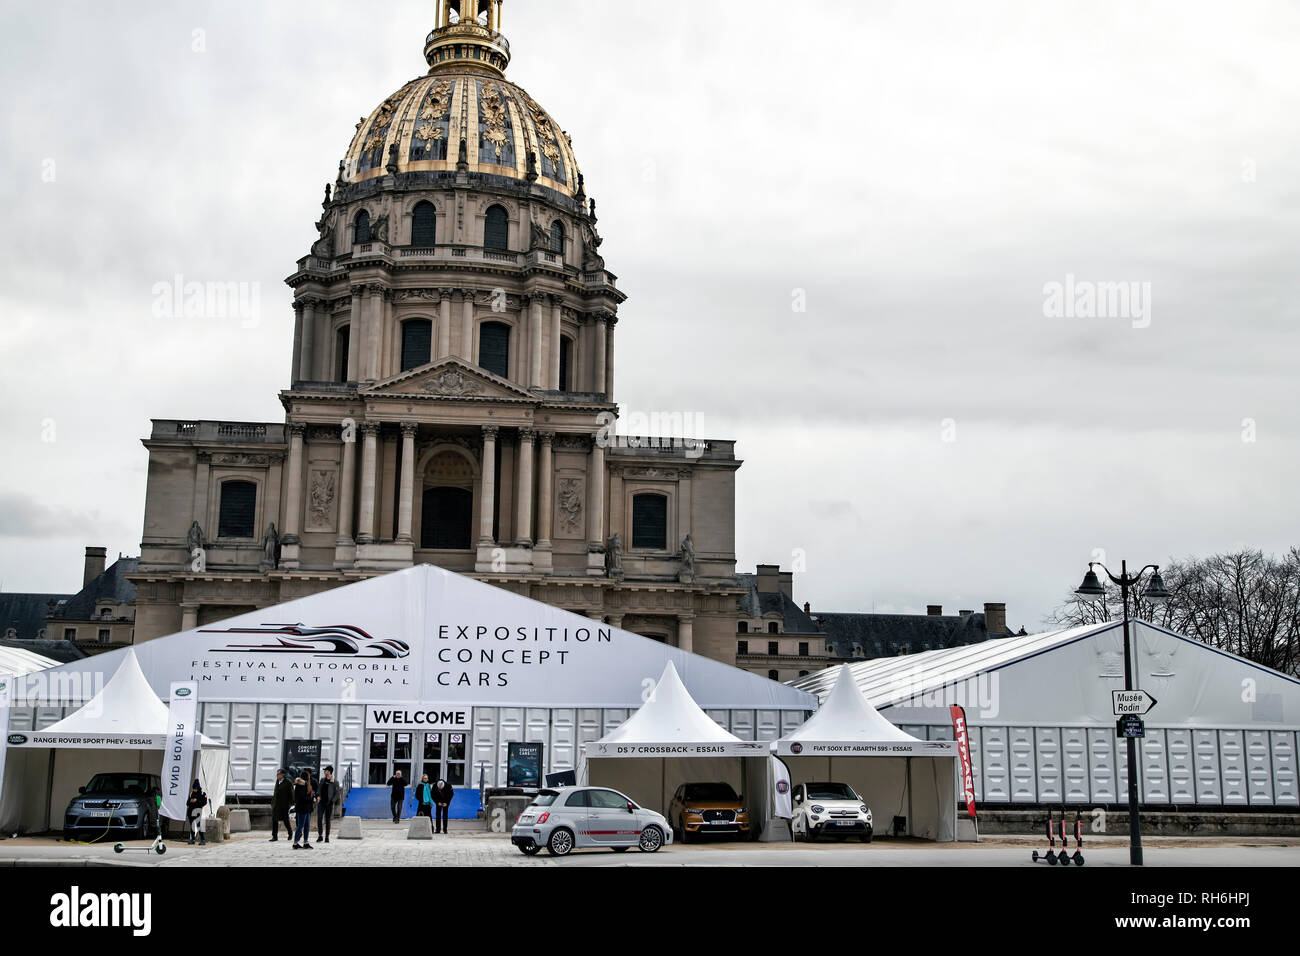 Paris, France. 31st Jan, 2019. The International Automobile Festival brings together in Paris the most beautiful concept cars made by car manufacturers, from January 30th to February 31st, 2019. Credit: Bernard Menigault/Alamy Live News - Stock Image